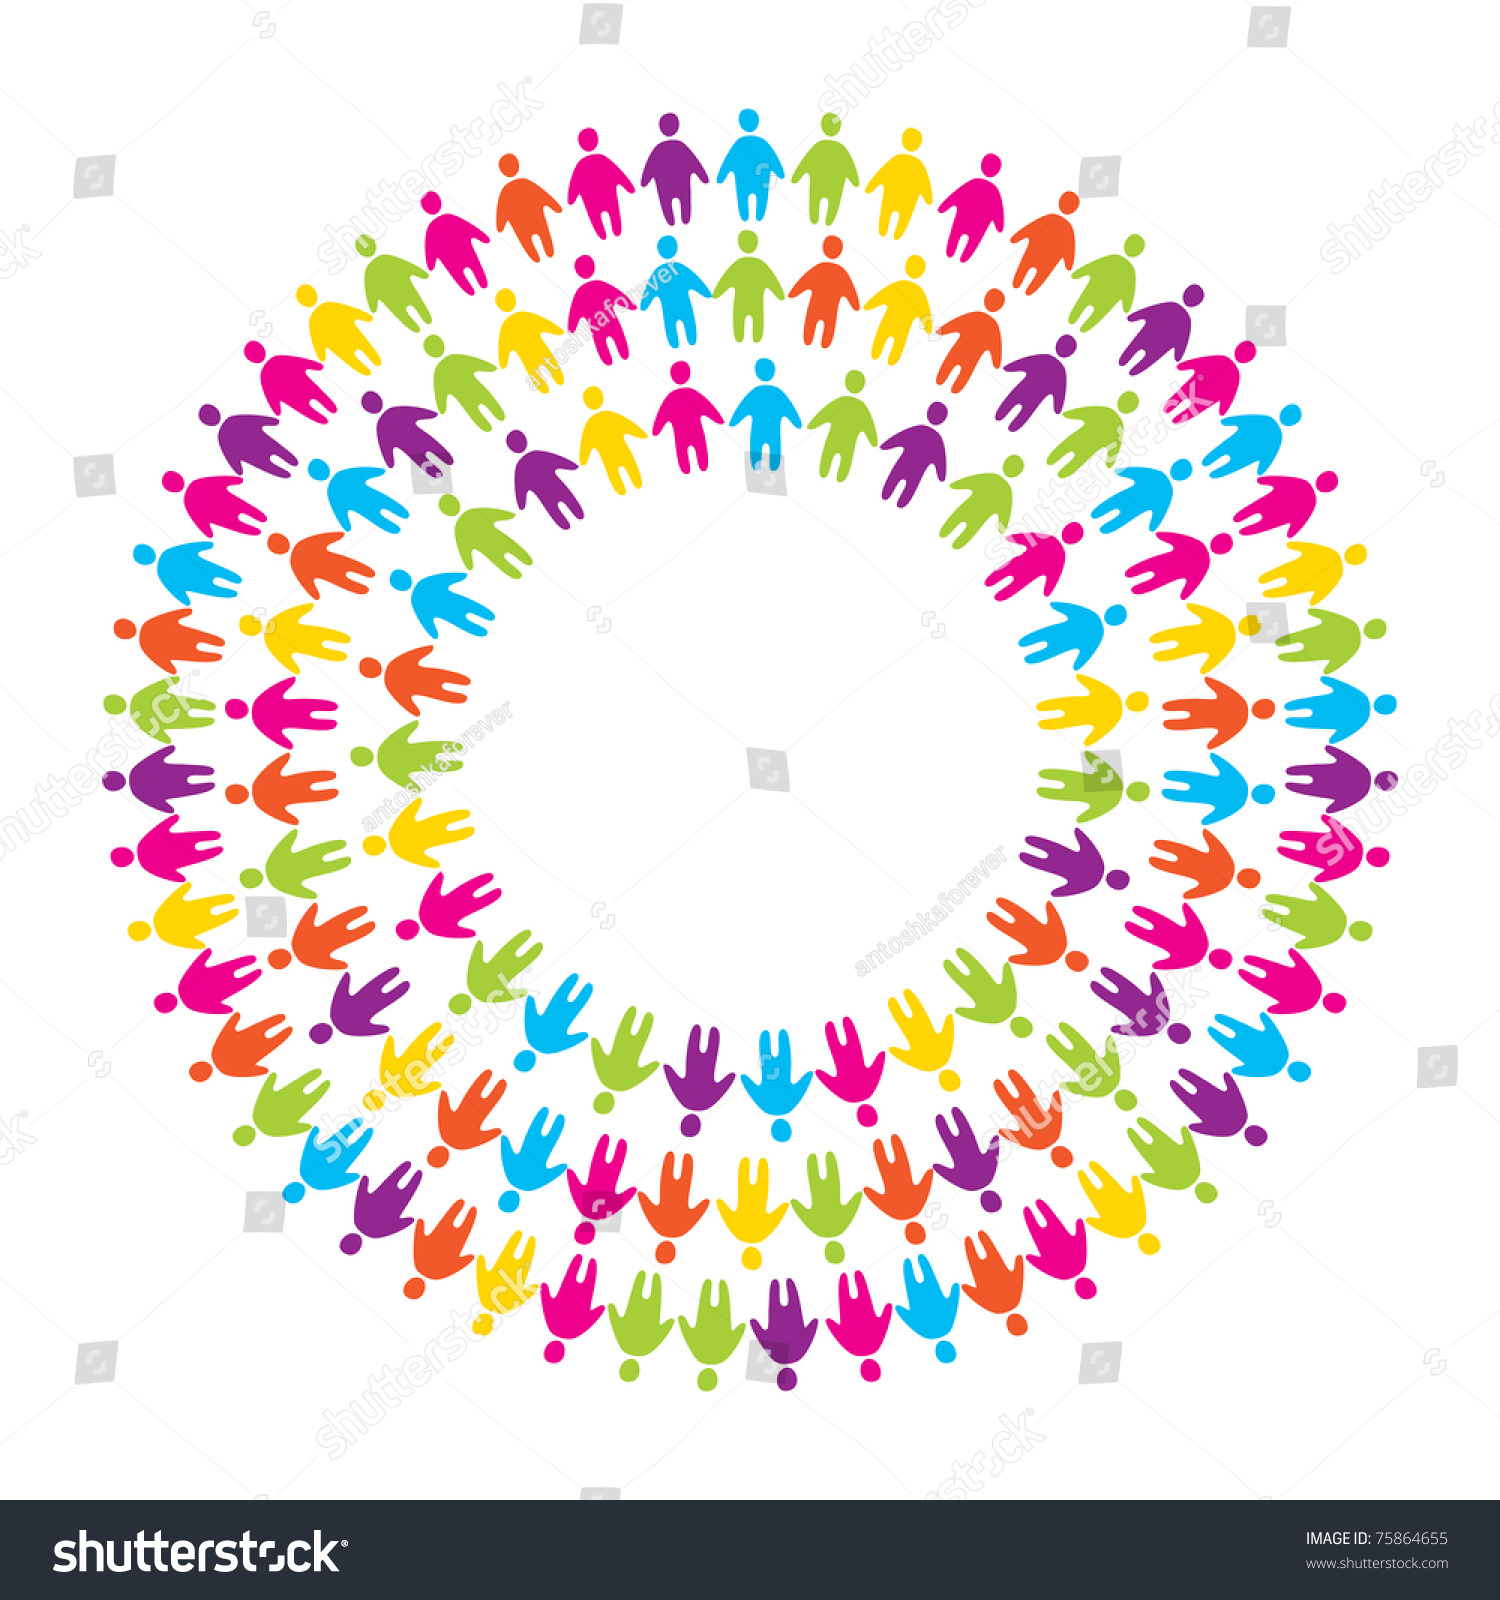 Signsymbol Unity Friendship Alliance Stock Vector Royalty Free